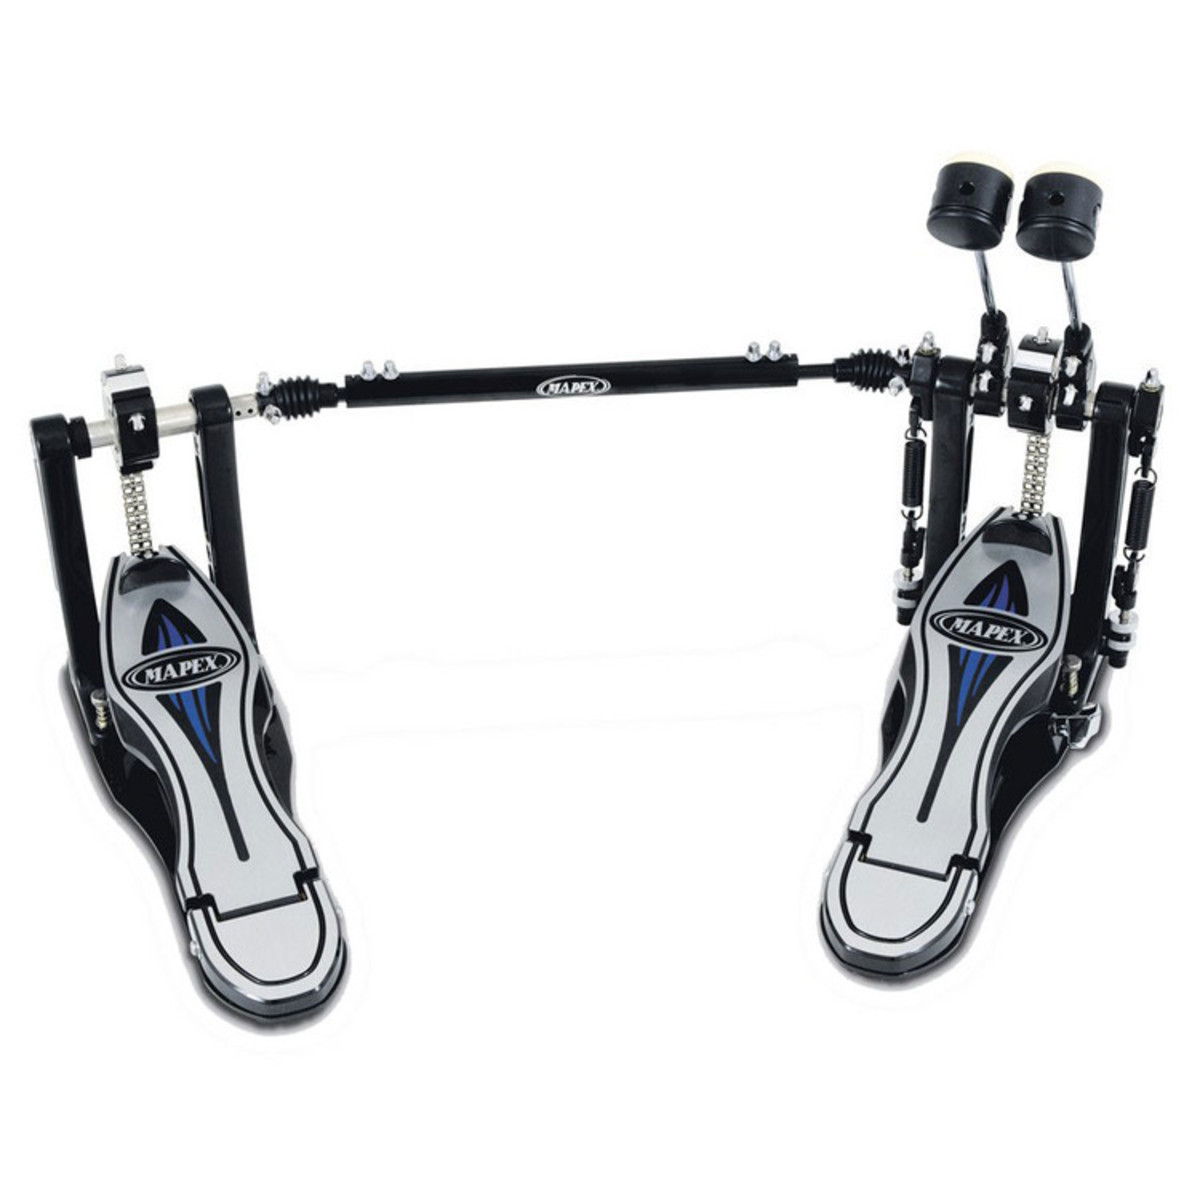 Image result for mapex falcon double bass pedal